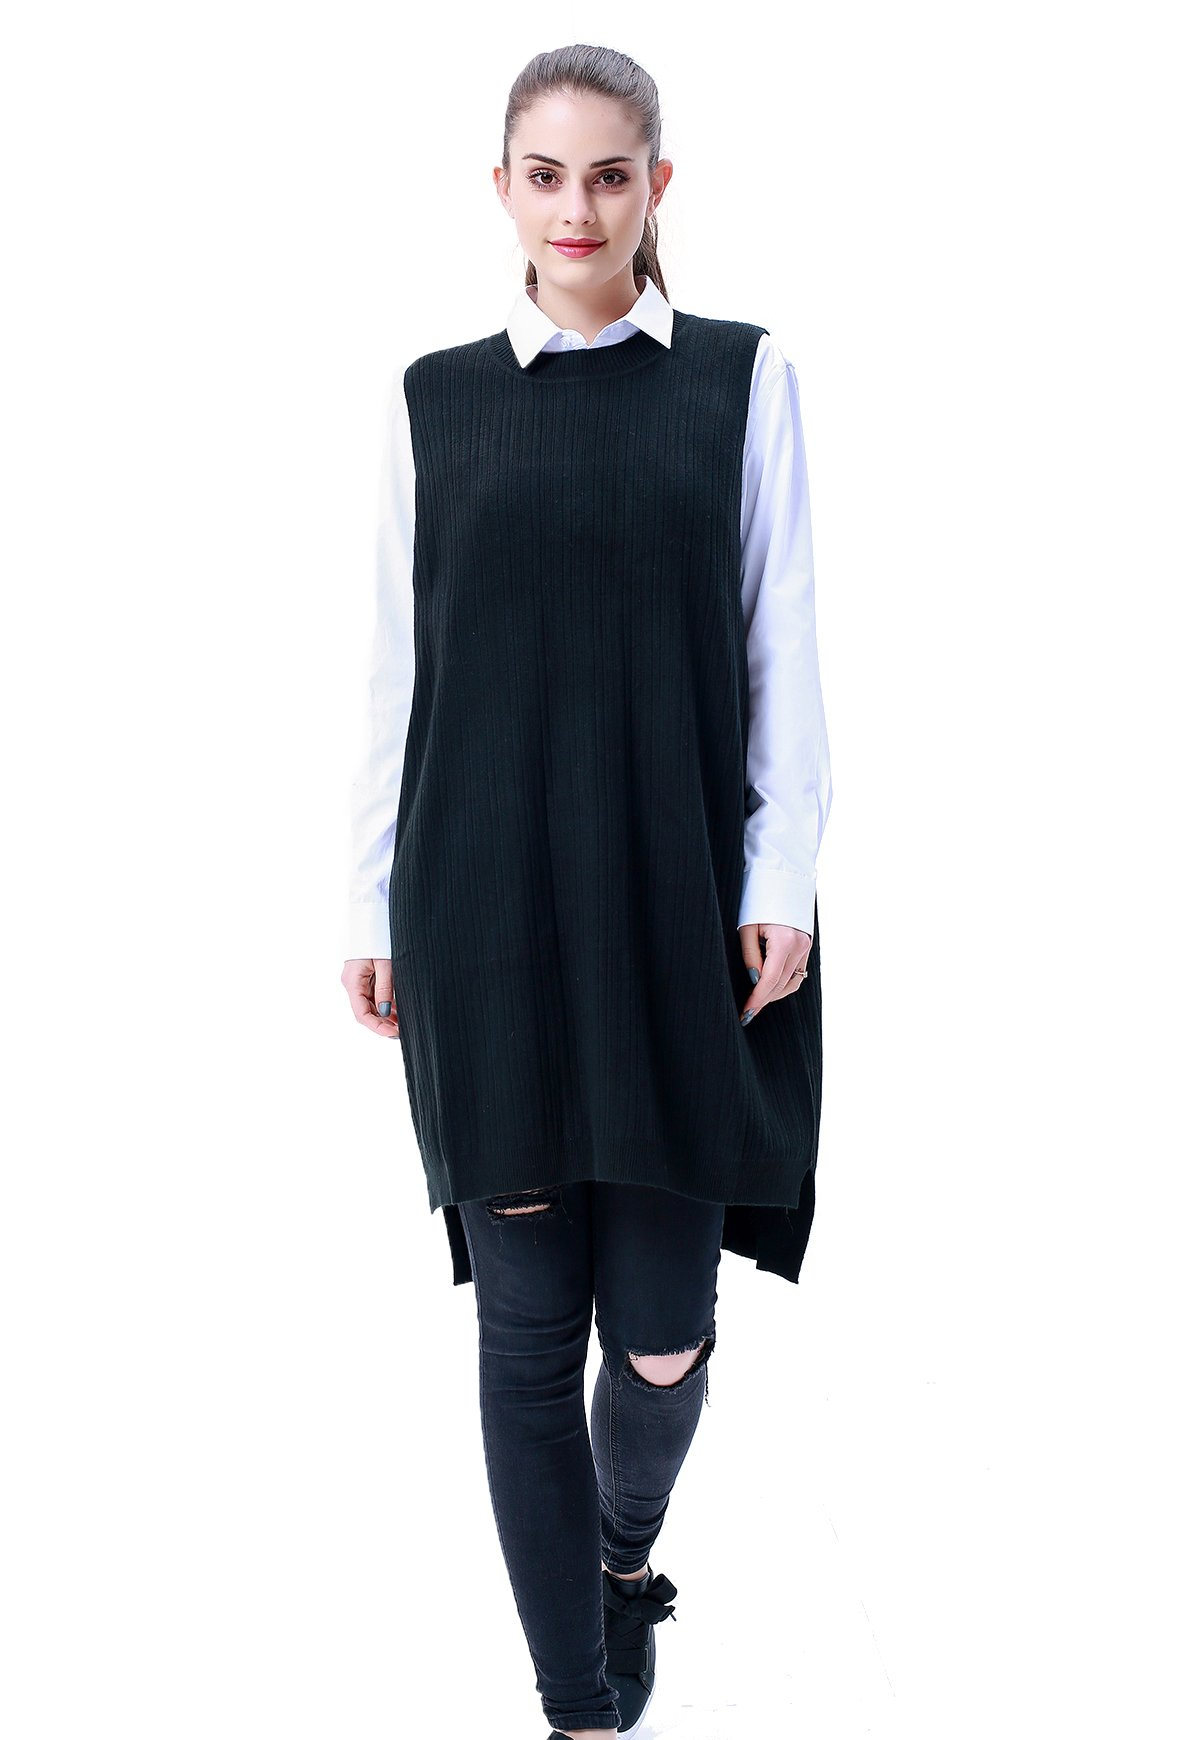 MEEFUR Women's Soft Mix Match Dress Pullover Crewneck Spring Sleeveless Sweater Relaxed Fit Baggy Long Poncho Vests Black